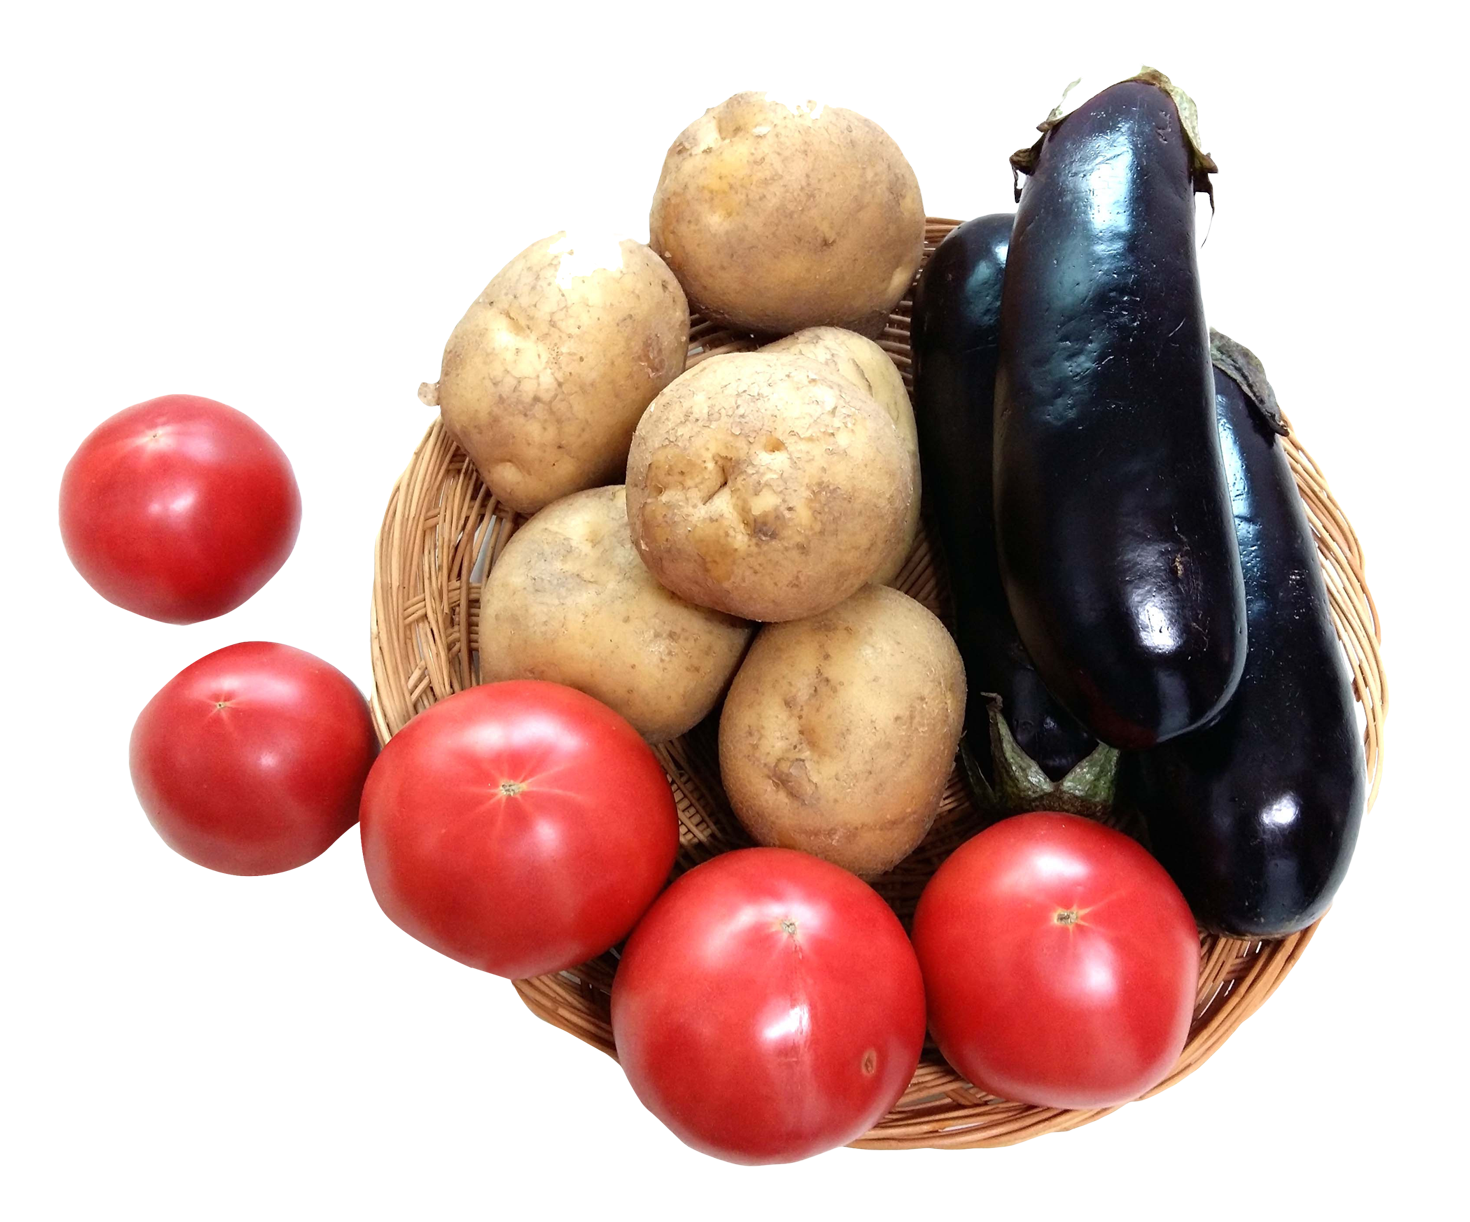 Png images pngpix tomato. Tomatoes clipart eggplant plant